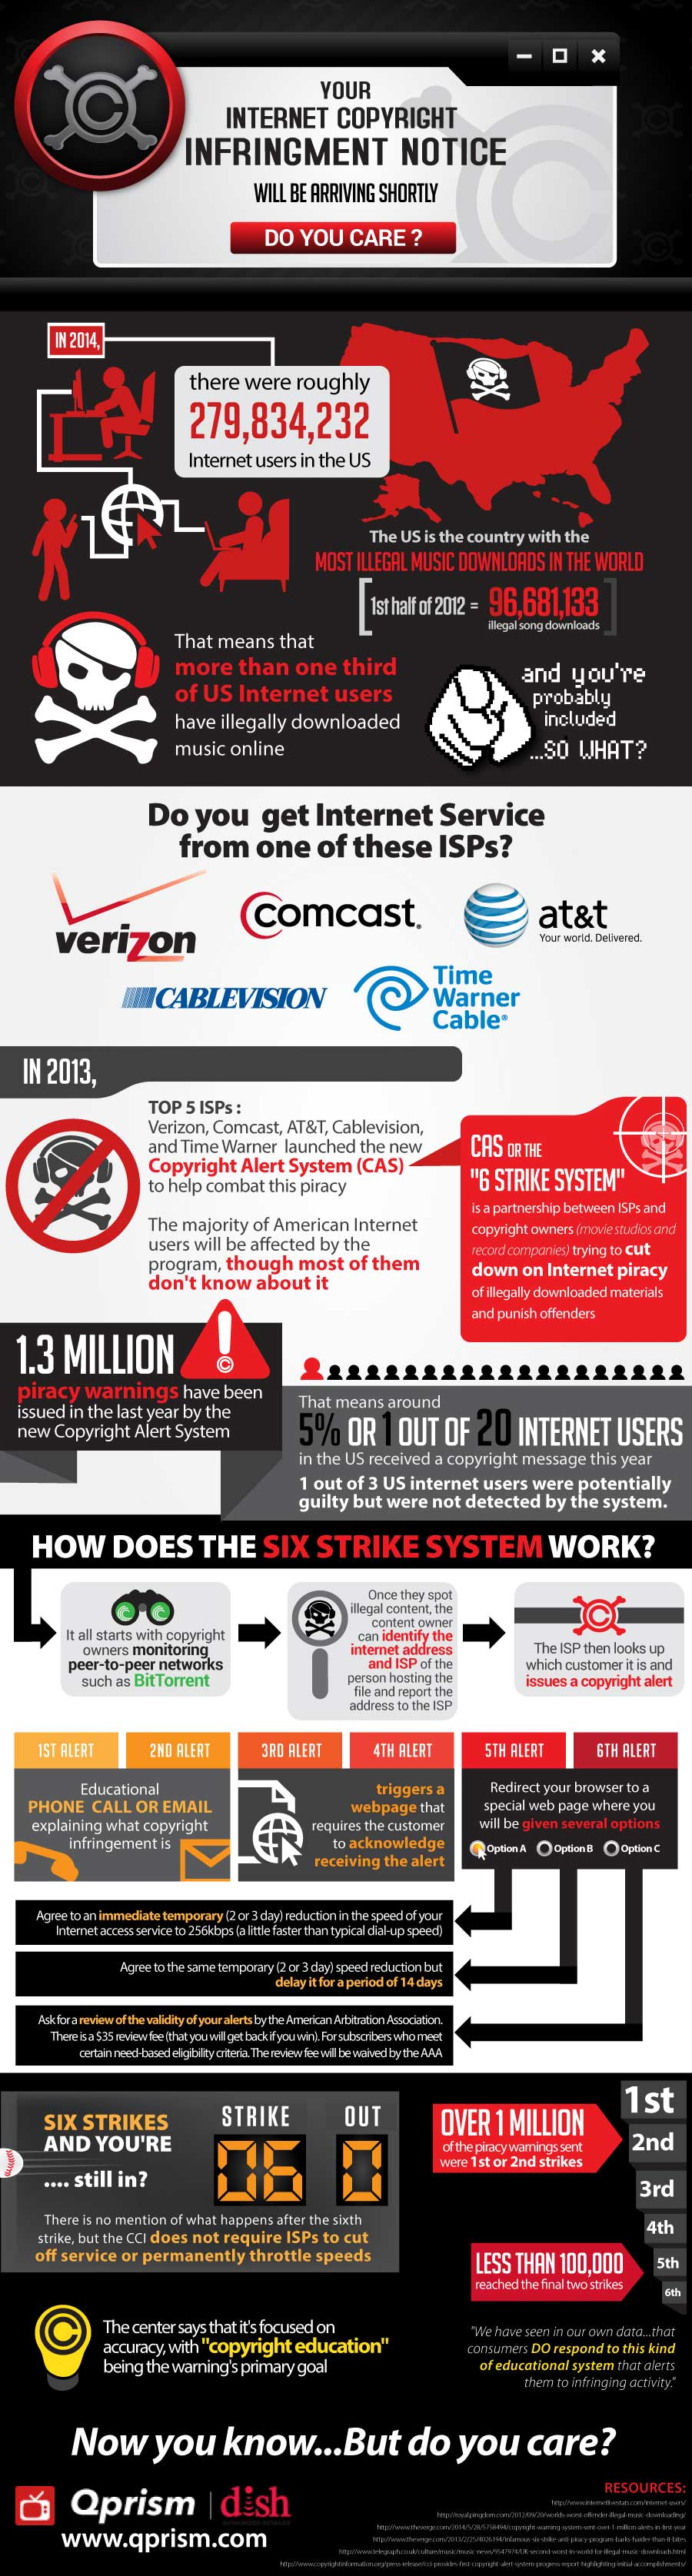 internet-piracy-infographic-cas-six-strike-system